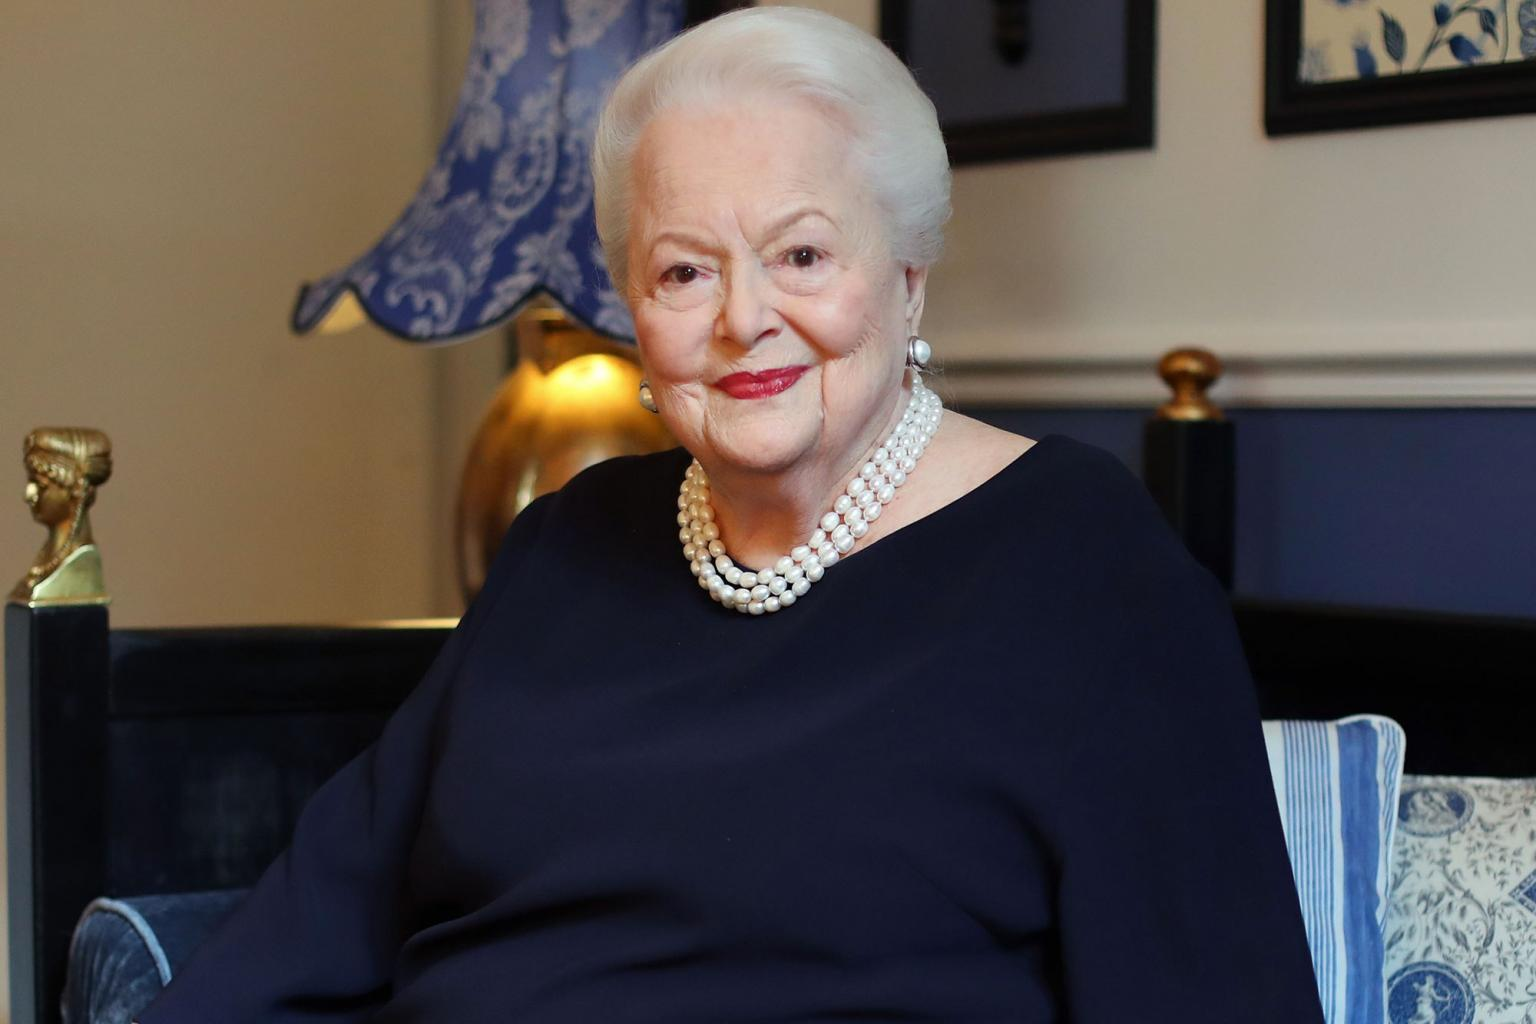 Olivia de Havilland on Becoming the Oldest Person to Be Named a Dame: I'm 'Extremely Proud'